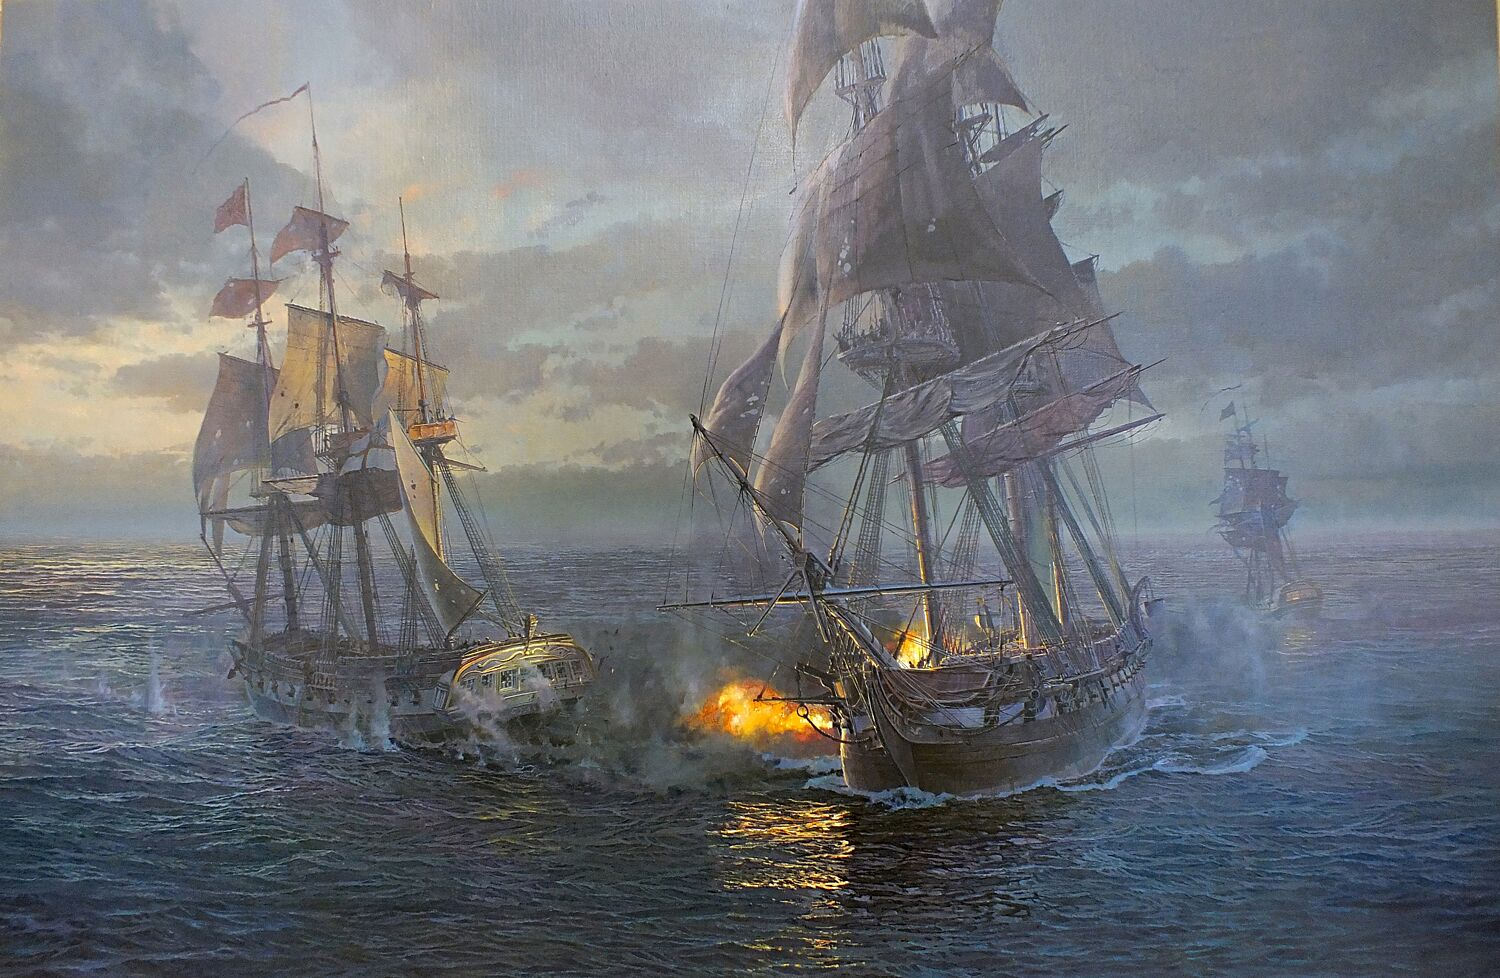 Maarten Platje,  Action in the Mid Atlantic, the Capture of HMS  Cyane  and HMS  Levant ,  2018. Oil on linen.